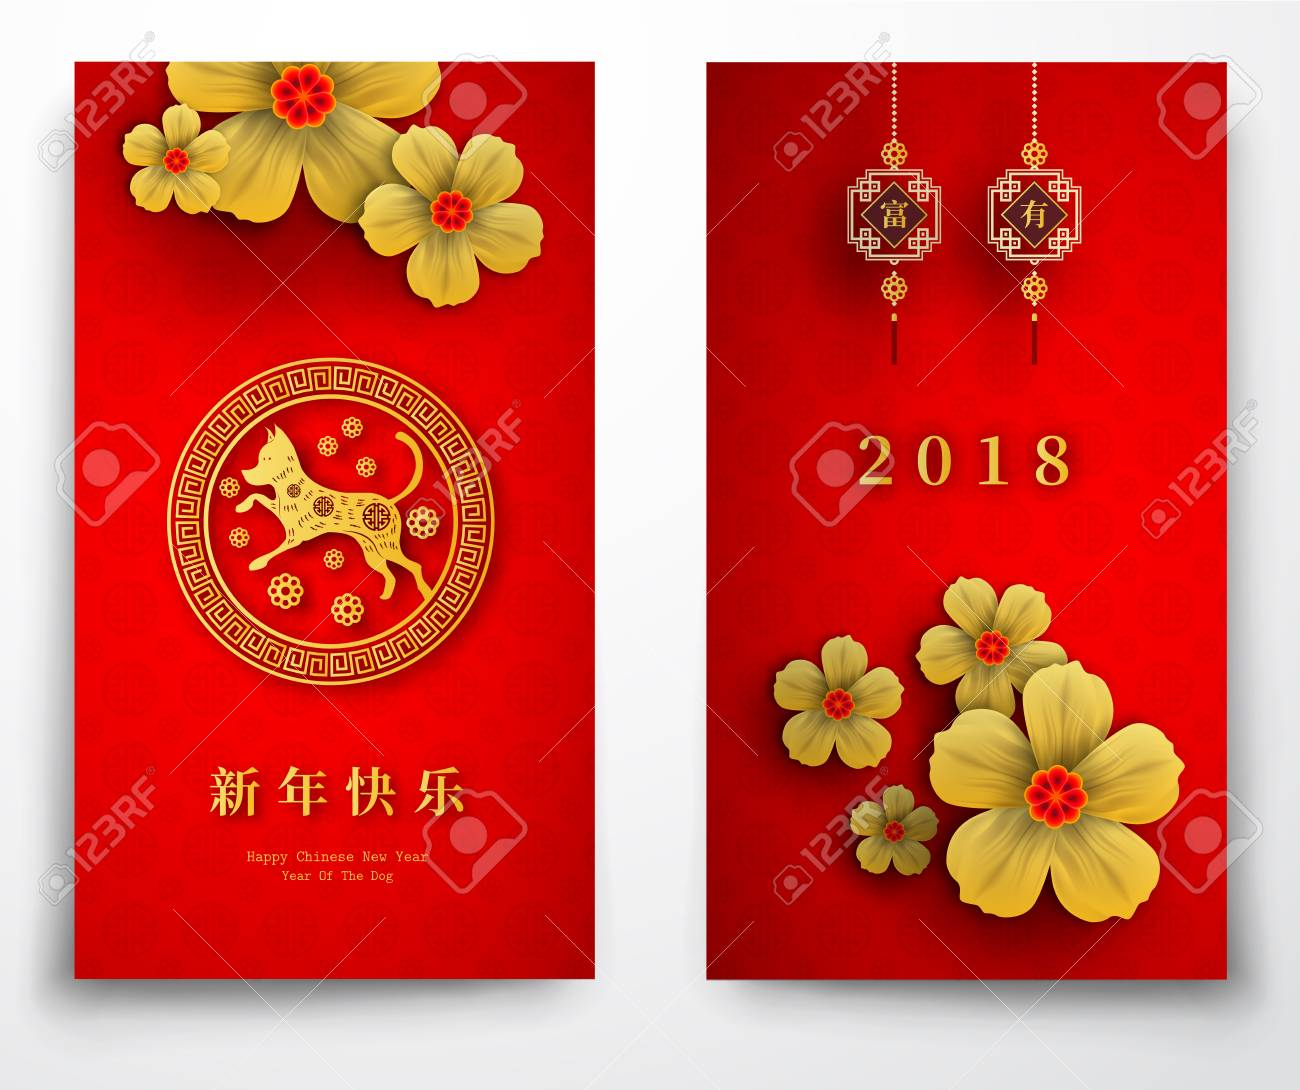 Chinese characters for happy new year 2018 happy new year greeting 2018 chinese new year paper cutting year of dog vector design for your greetings card kristyandbryce Choice Image